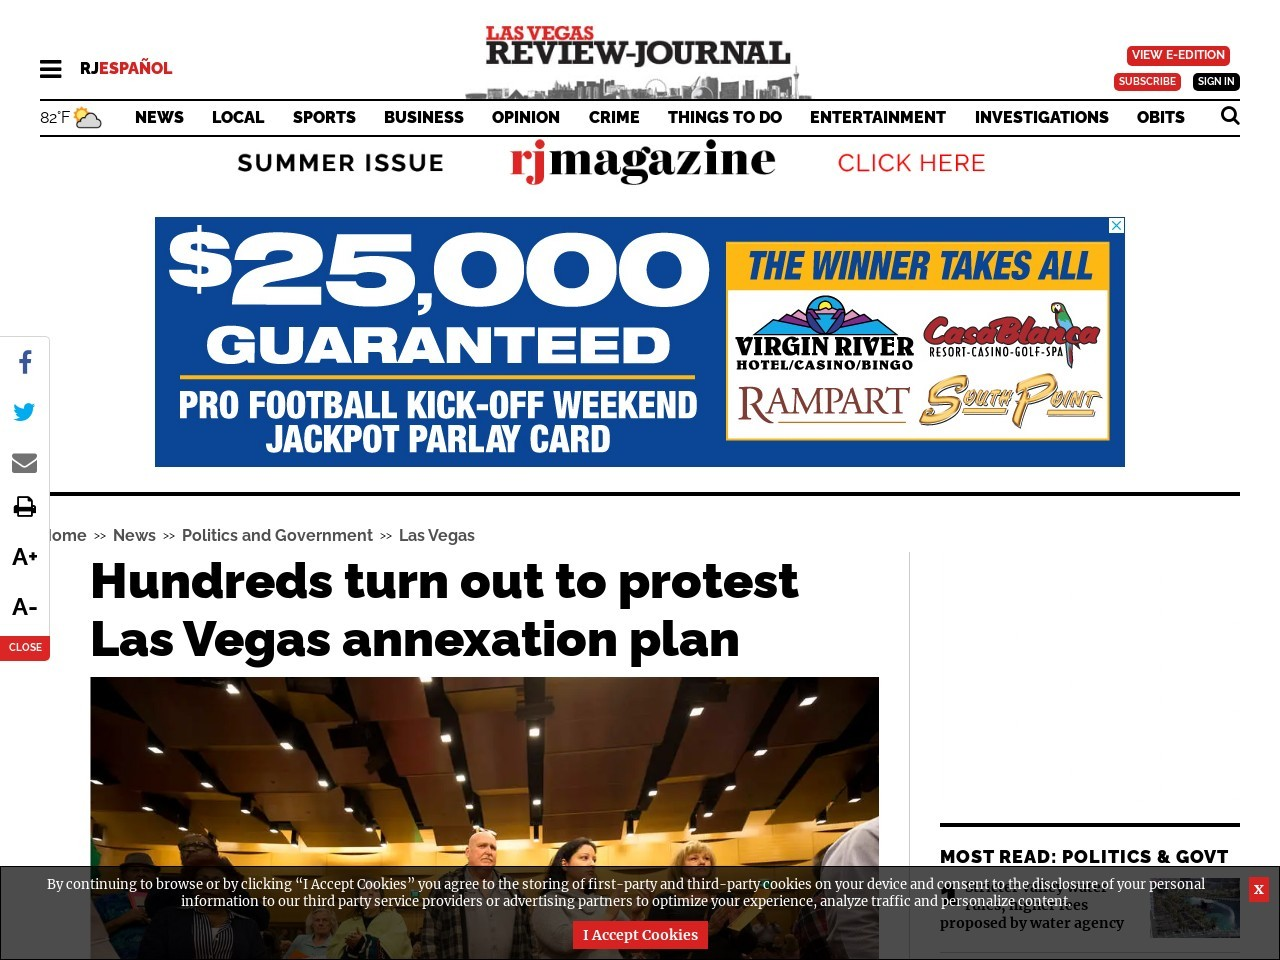 Hundreds turn out to protest Las Vegas annexation plan